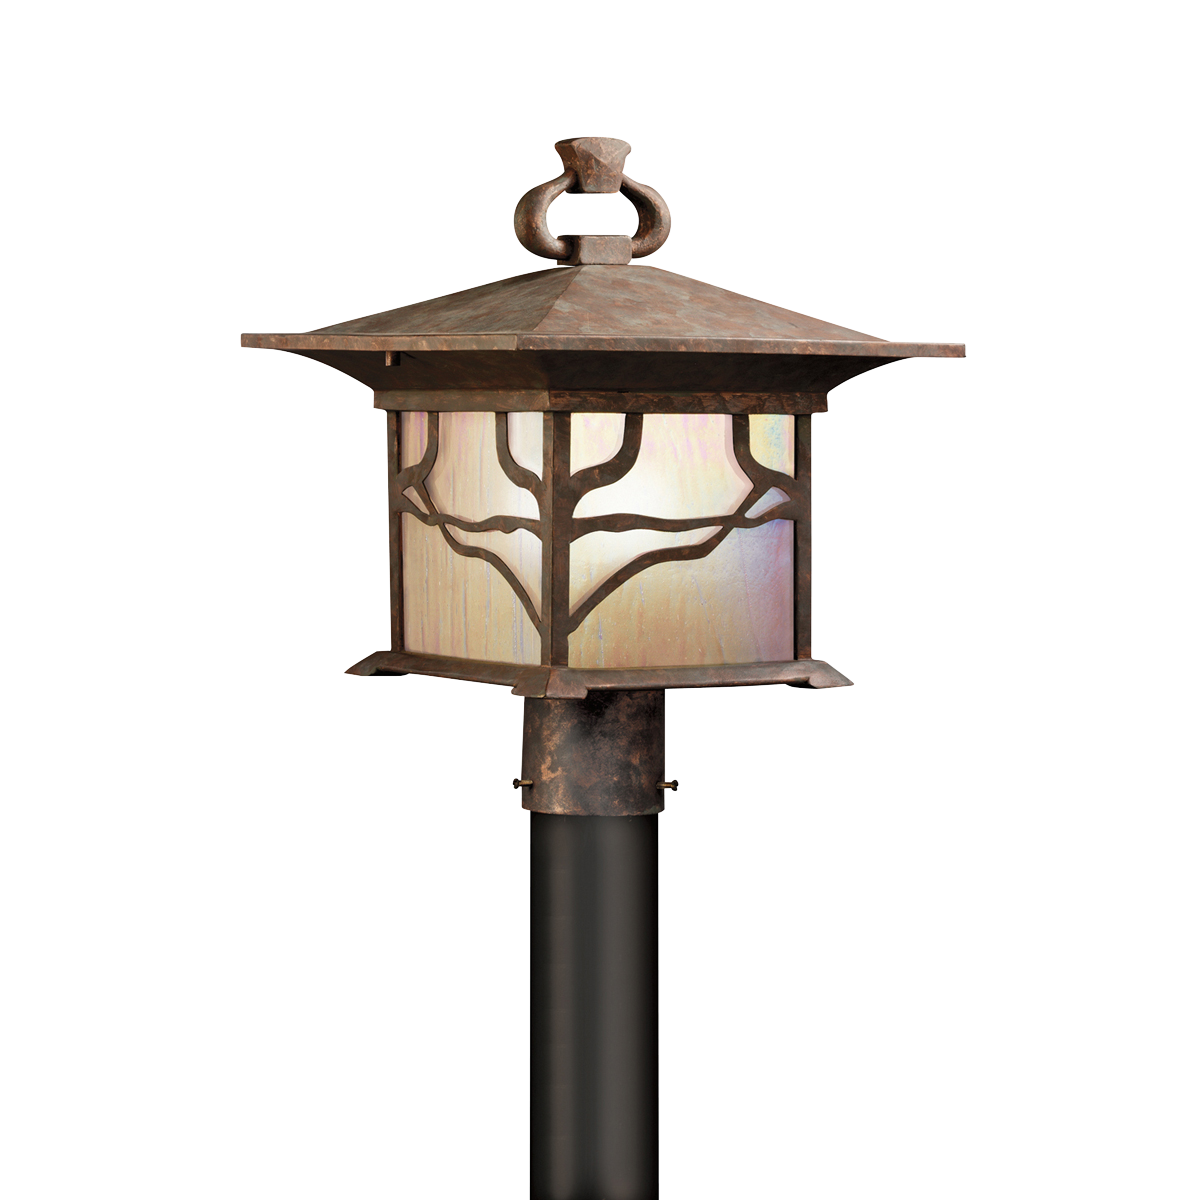 1 light mission design outdoor post fixture morris collection kichler morris oriental outdoor post lantern by kichler lighting aloadofball Images